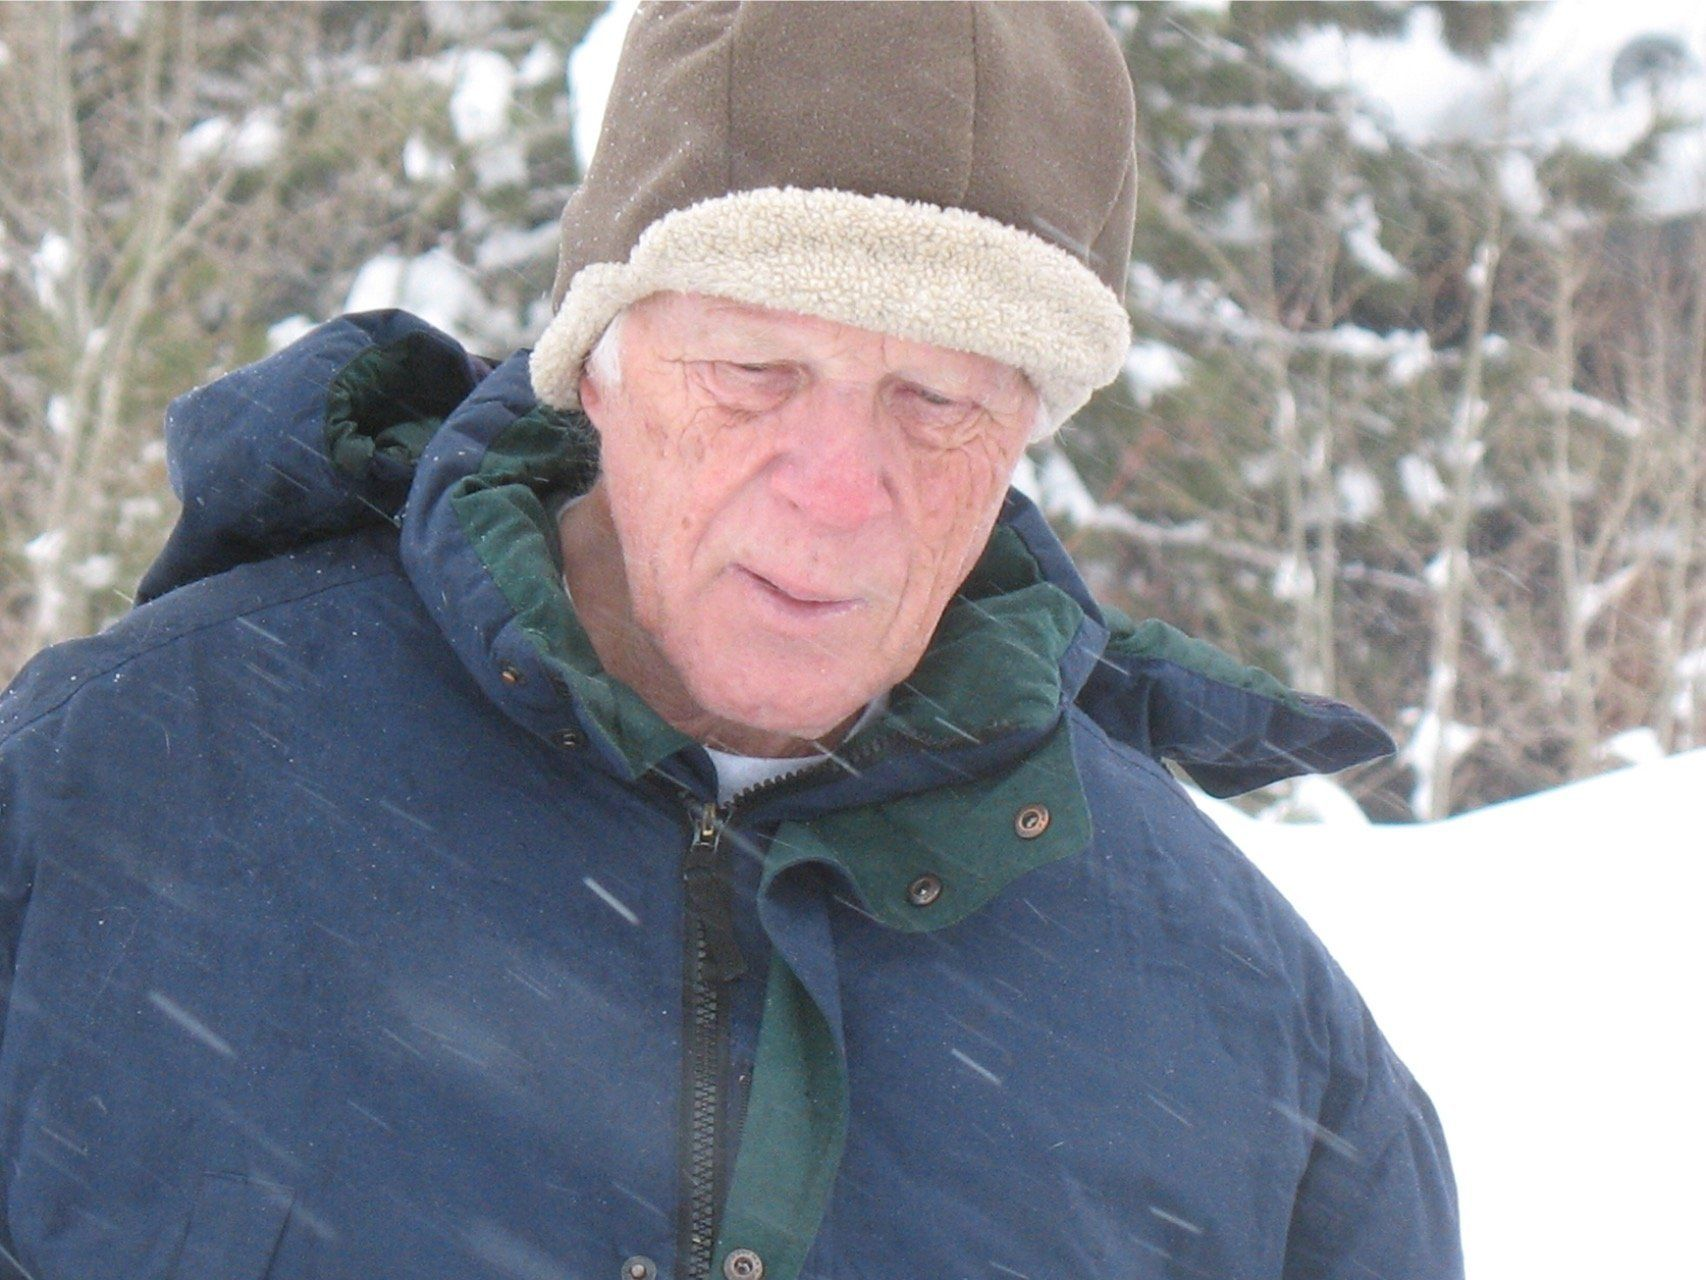 Vic Johnson, the author's husband, is pictured here during a 2014 skitrip. Hedied on Jan. 4, 2017.